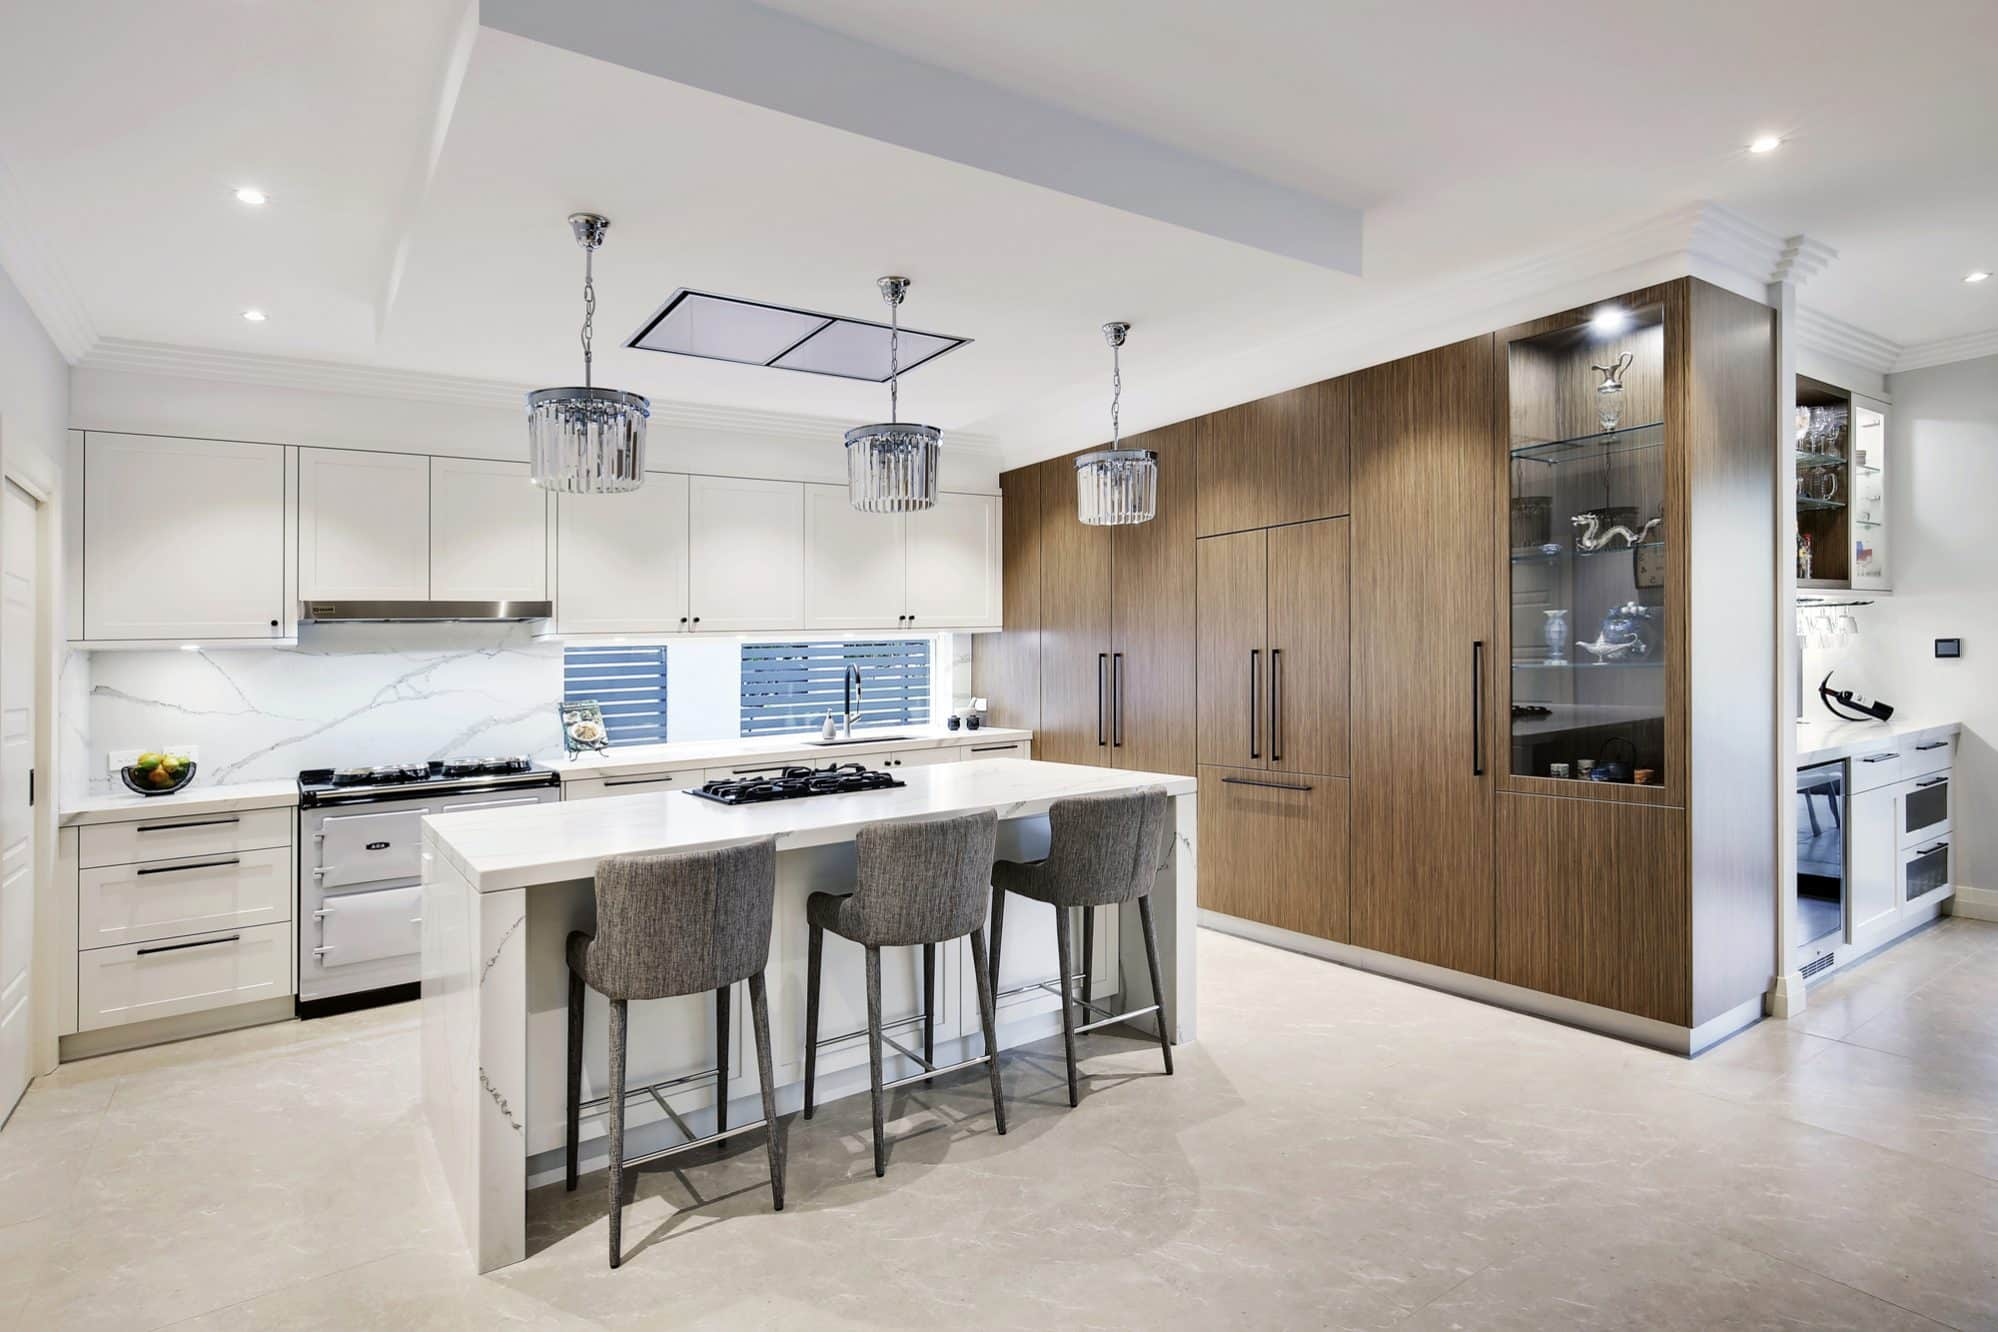 The eclectic kitchen showing a mixture of materials and fittings